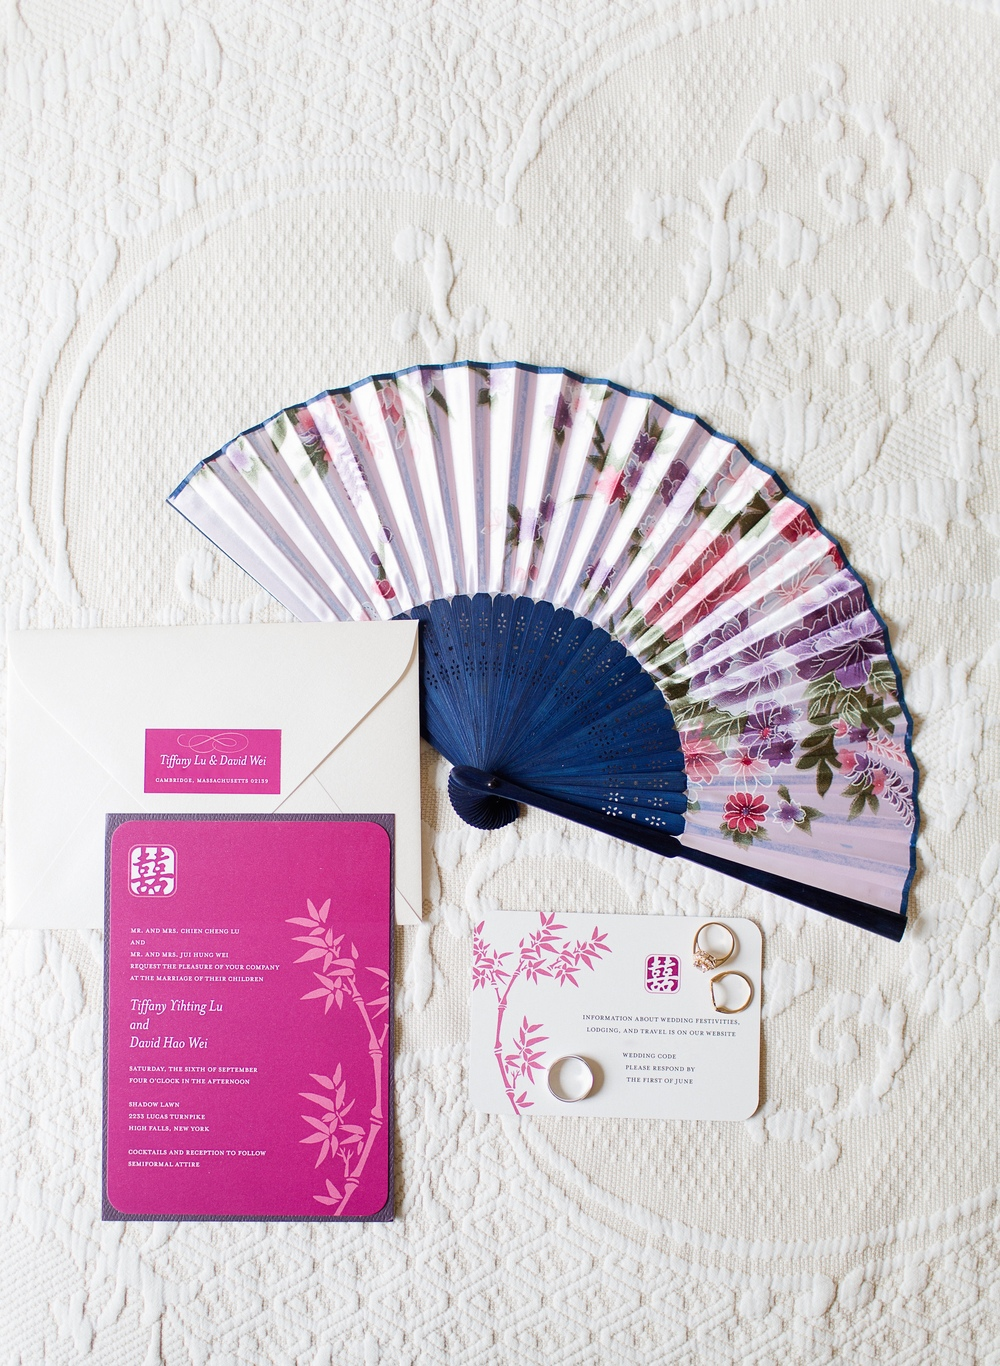 INVITATION & FAN TO KEEP COOL